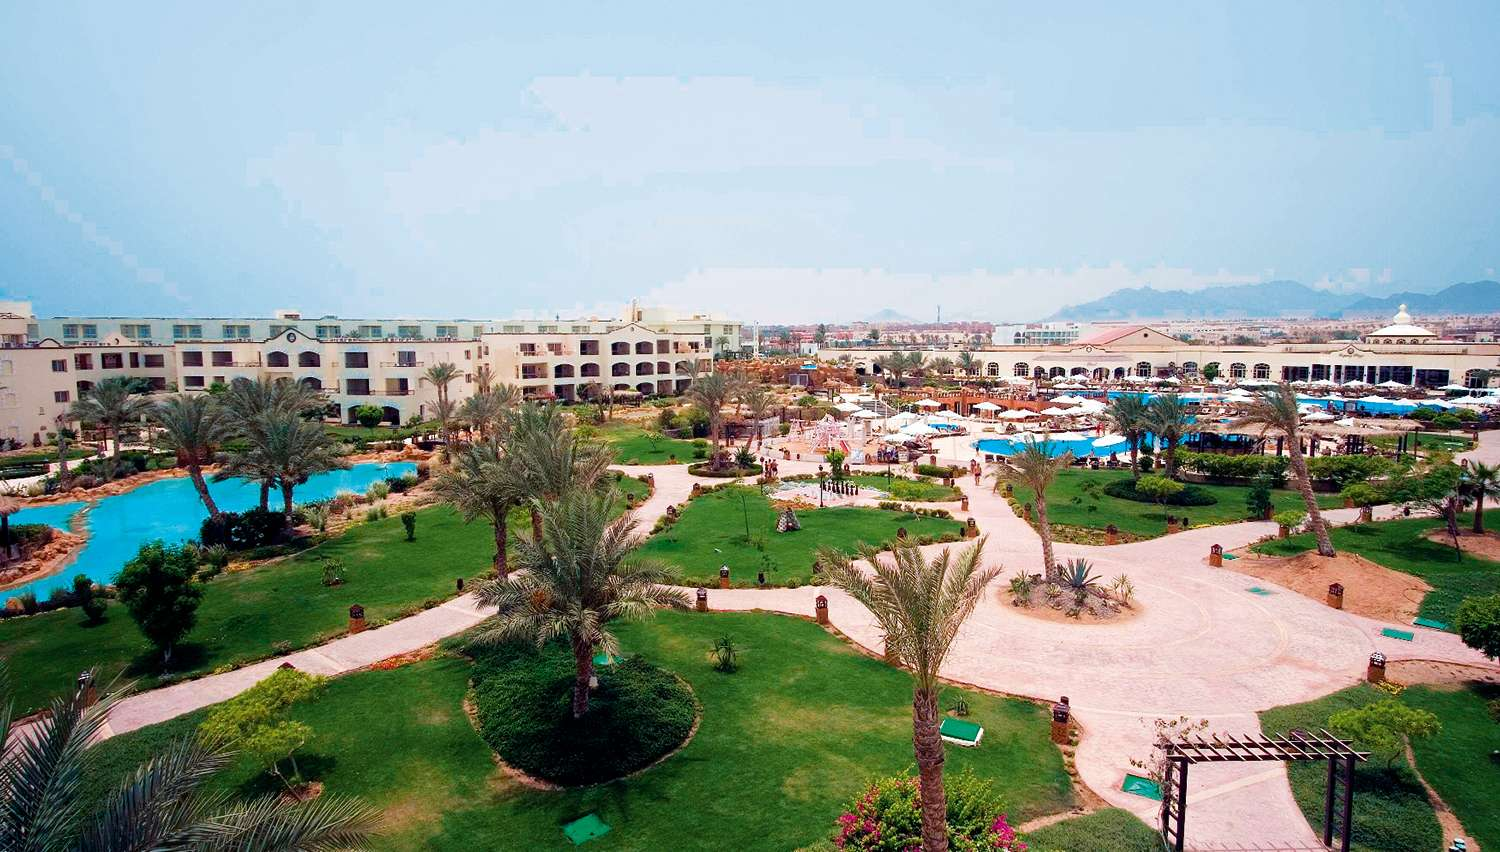 Regency Plaza Aquapark & Spa Resort (Šarm El Šeiha, Ēģipte)